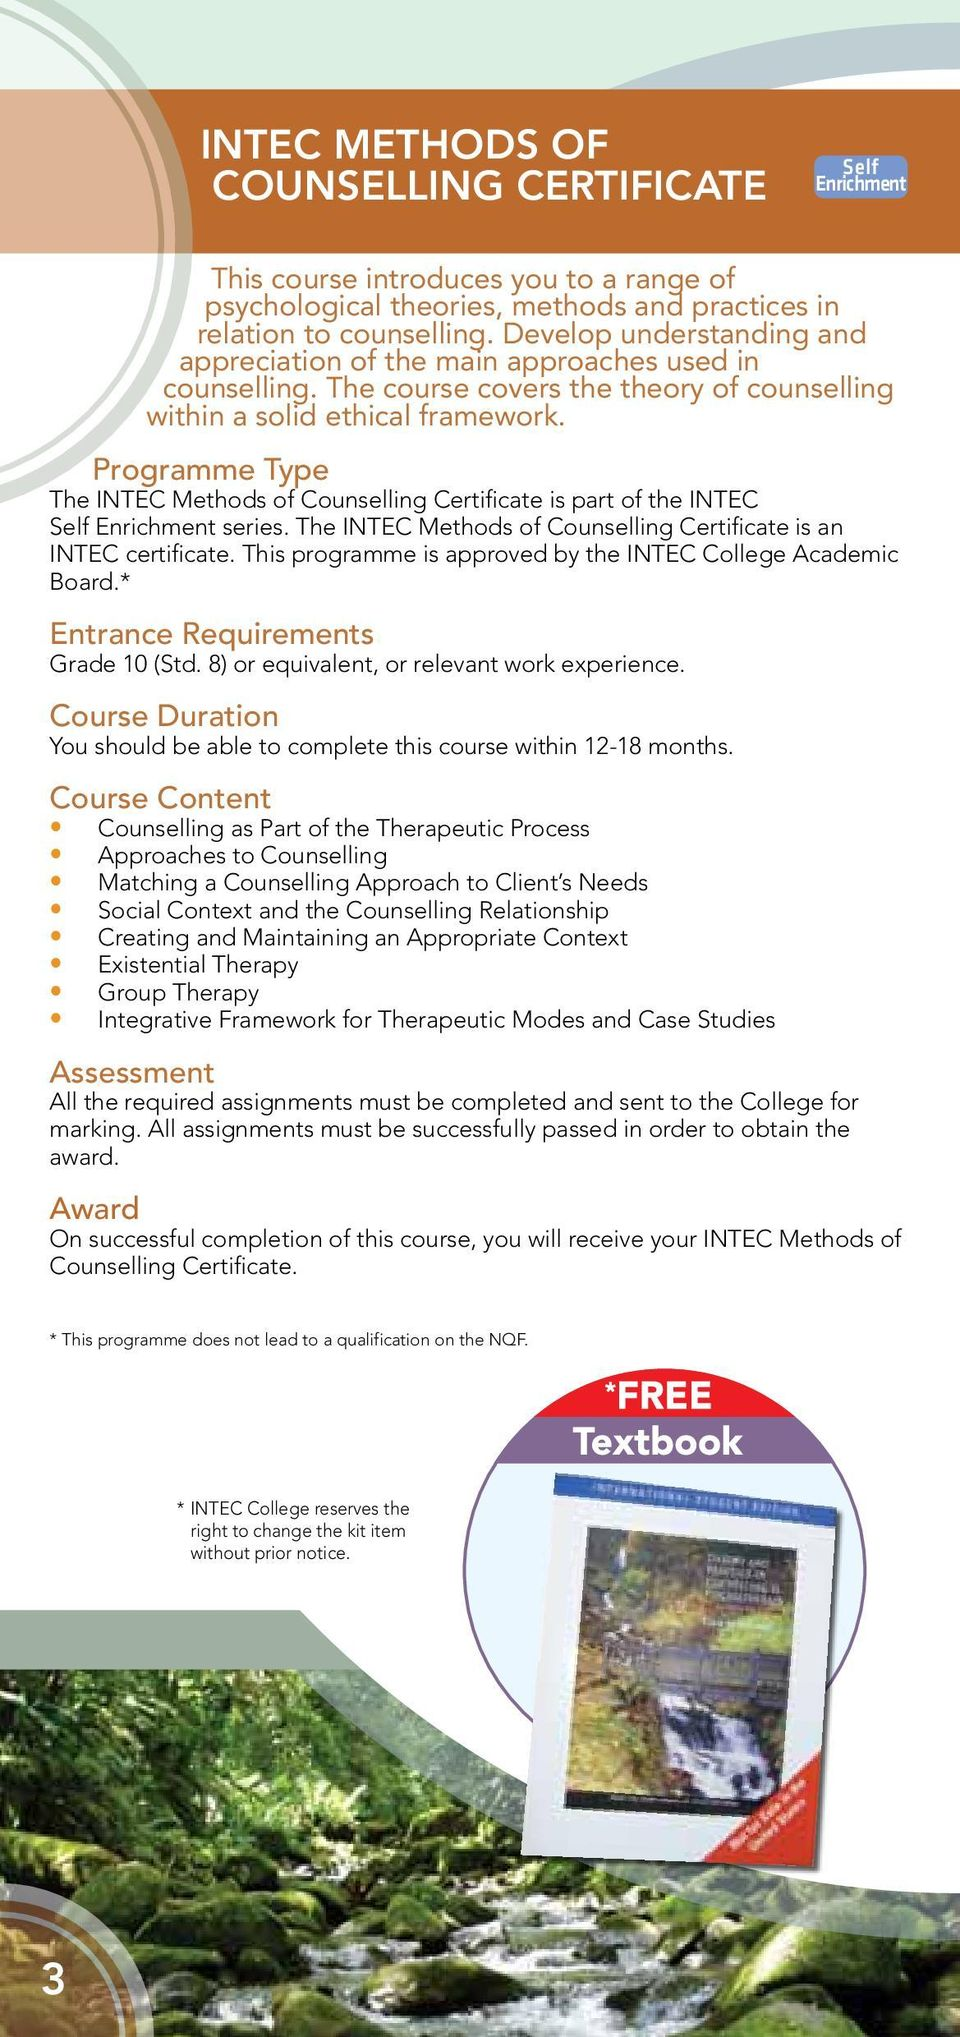 Programme Type The INTEC Methods of Counselling Certificate is part of the INTEC series. The INTEC Methods of Counselling Certificate is an INTEC certificate.